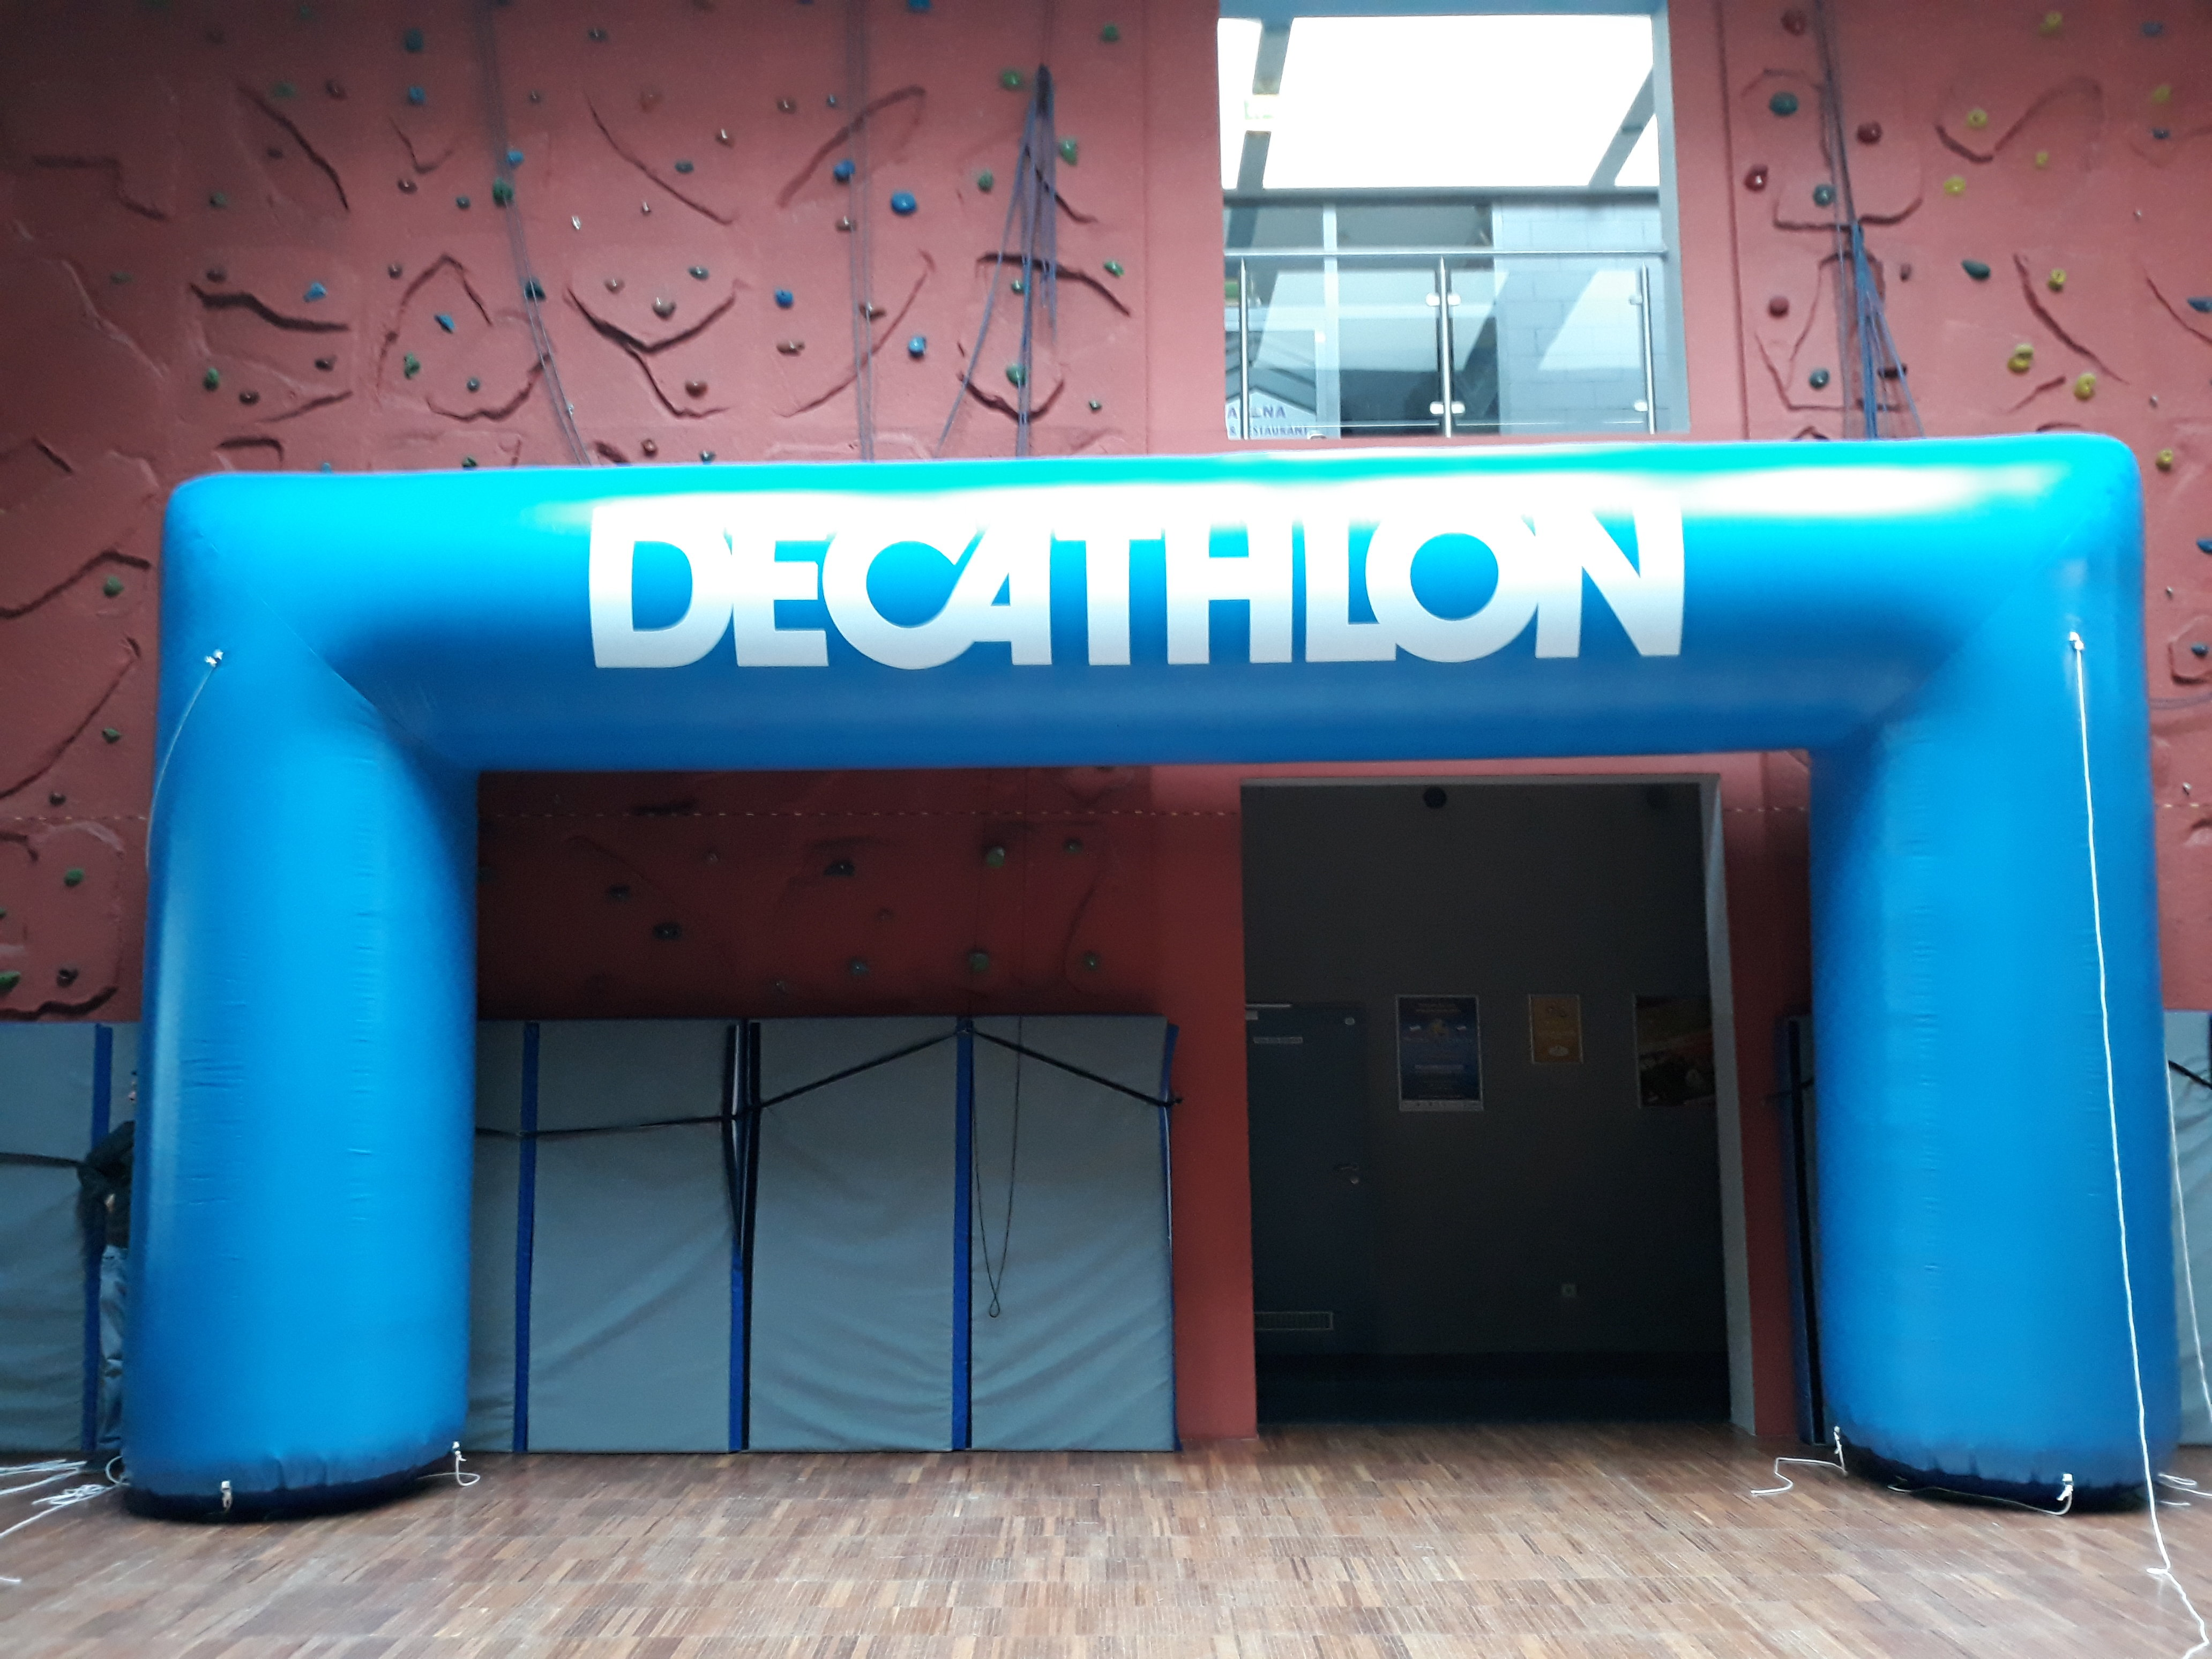 Advertising Festival Inflatable Gate Printing UK, Next Day Delivery - www.ontimeprint.co.uk